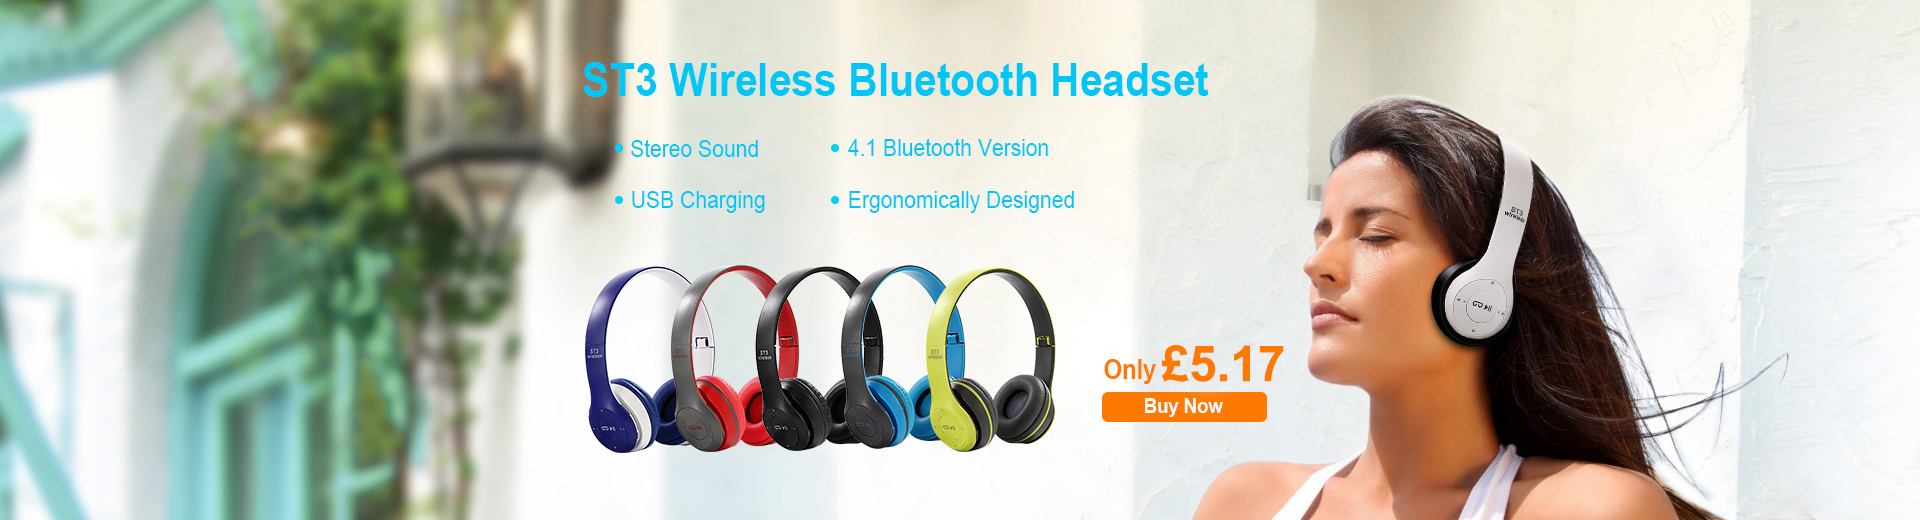 ST3 Wireless Bluetooth Headset